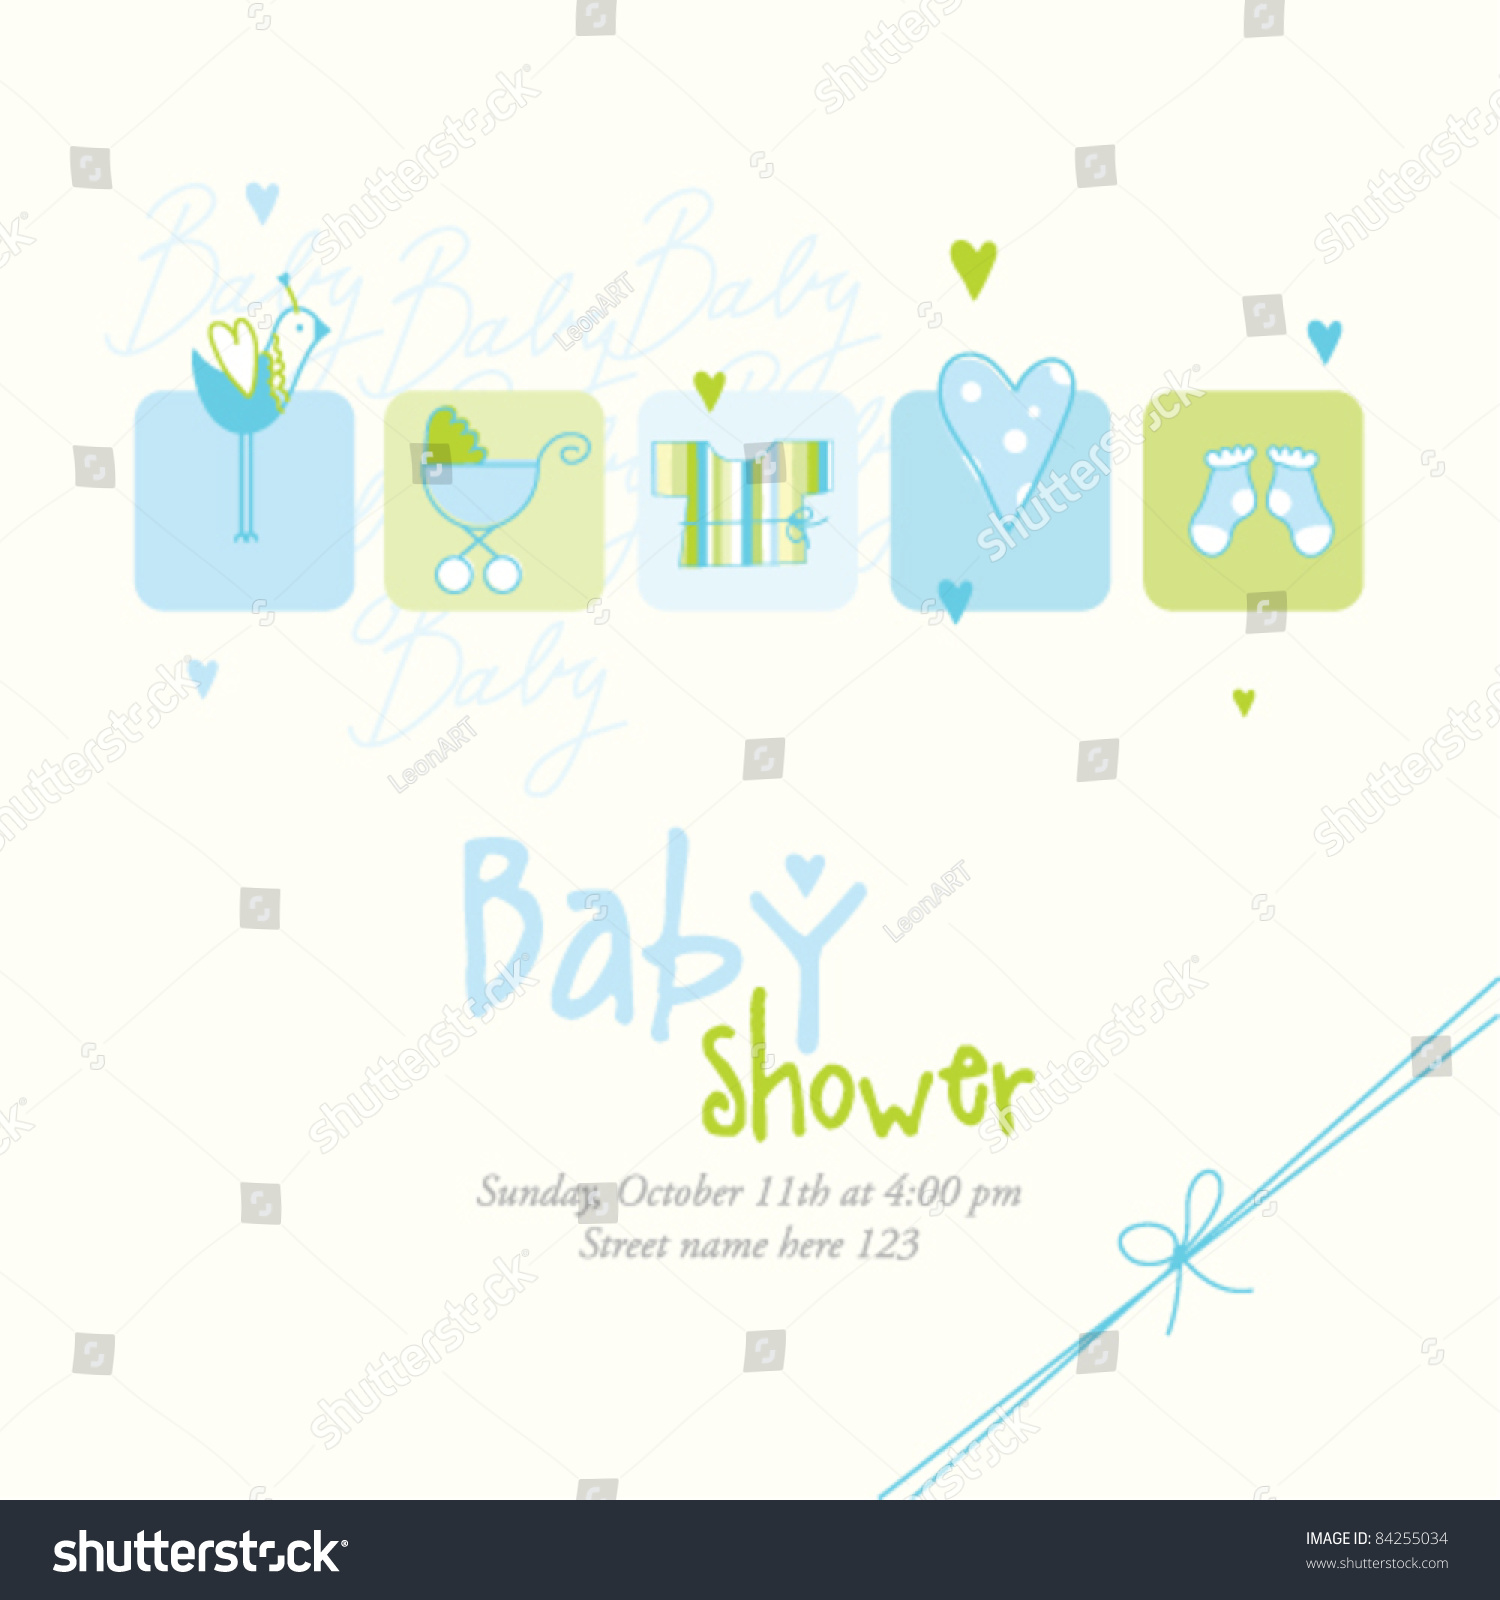 Baby Shower Card Invitation Template - Cute Unique Design Baby Boy ...